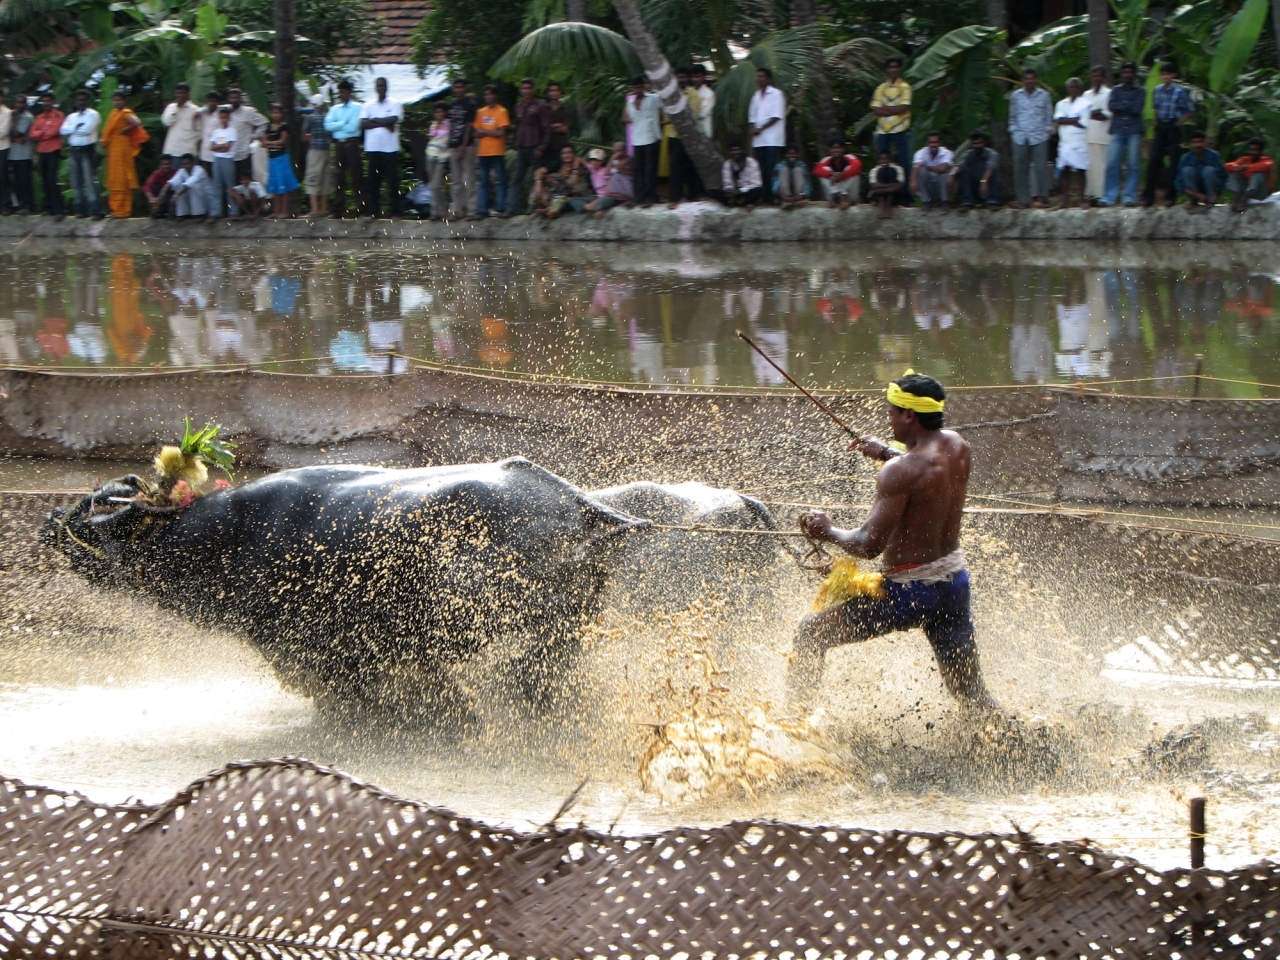 Kambala One Step Away From Being Declared Legal